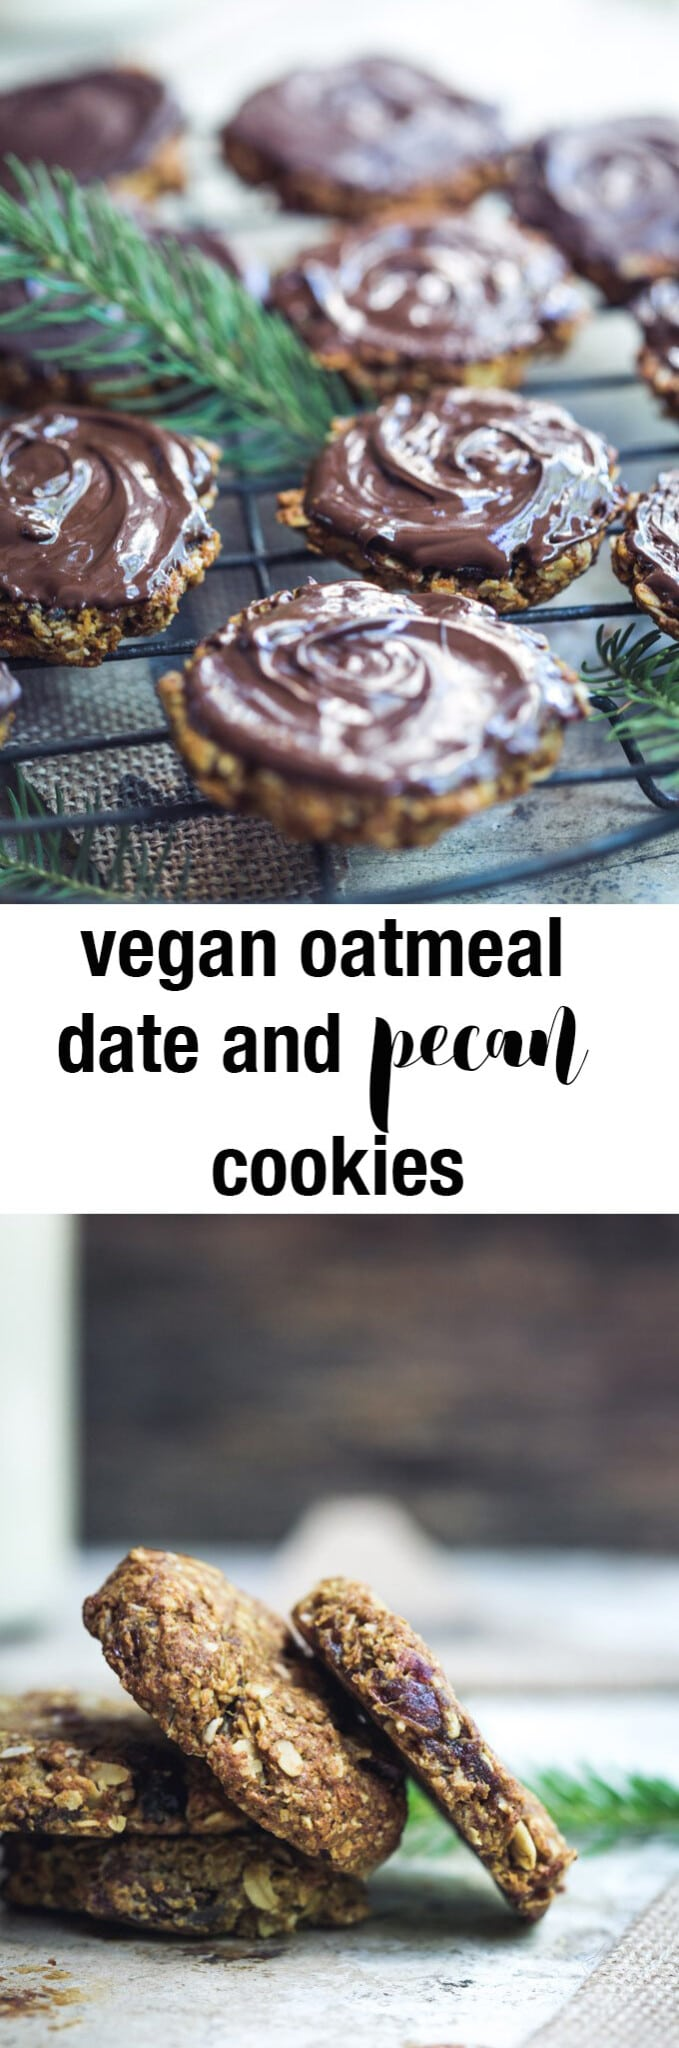 oatmeal-date-and-pecan-cookies-pin